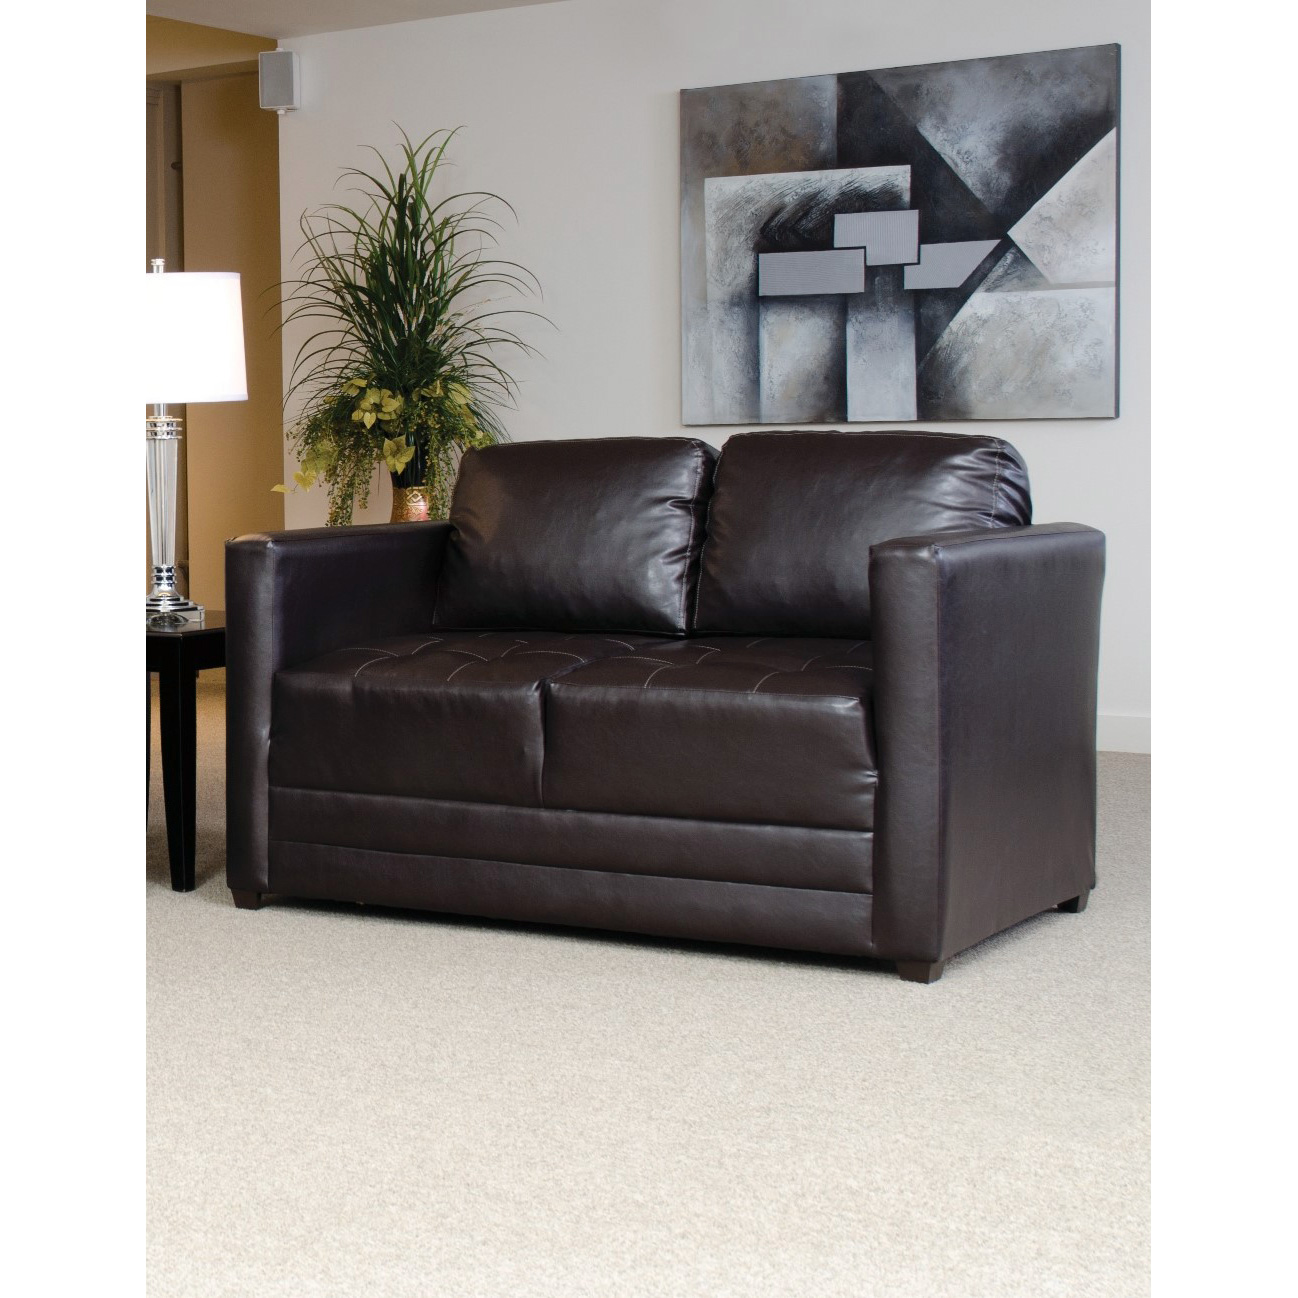 Serta Upholstery By Hughes Furniture | Burton Chocolate Loveseat Sofa